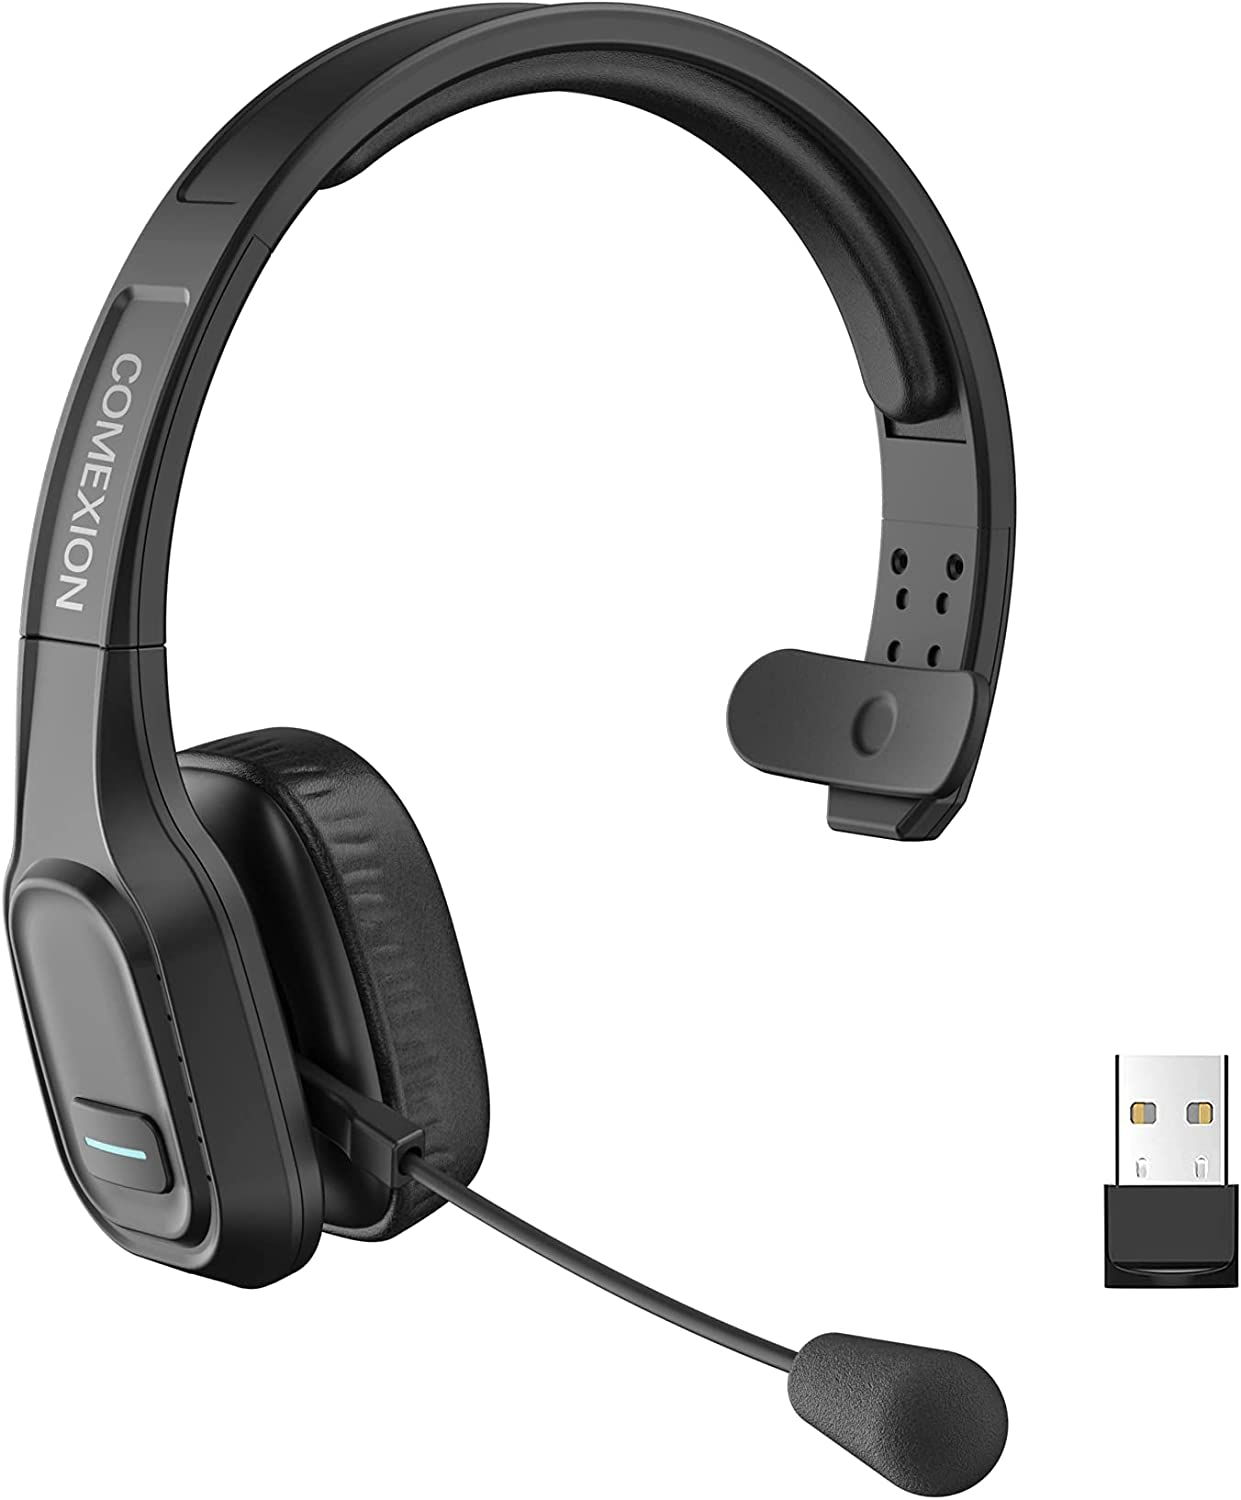 COMEXION Trucker San Diego Mall Bluetooth Headset with Wireless V5.0 Headphone Tampa Mall